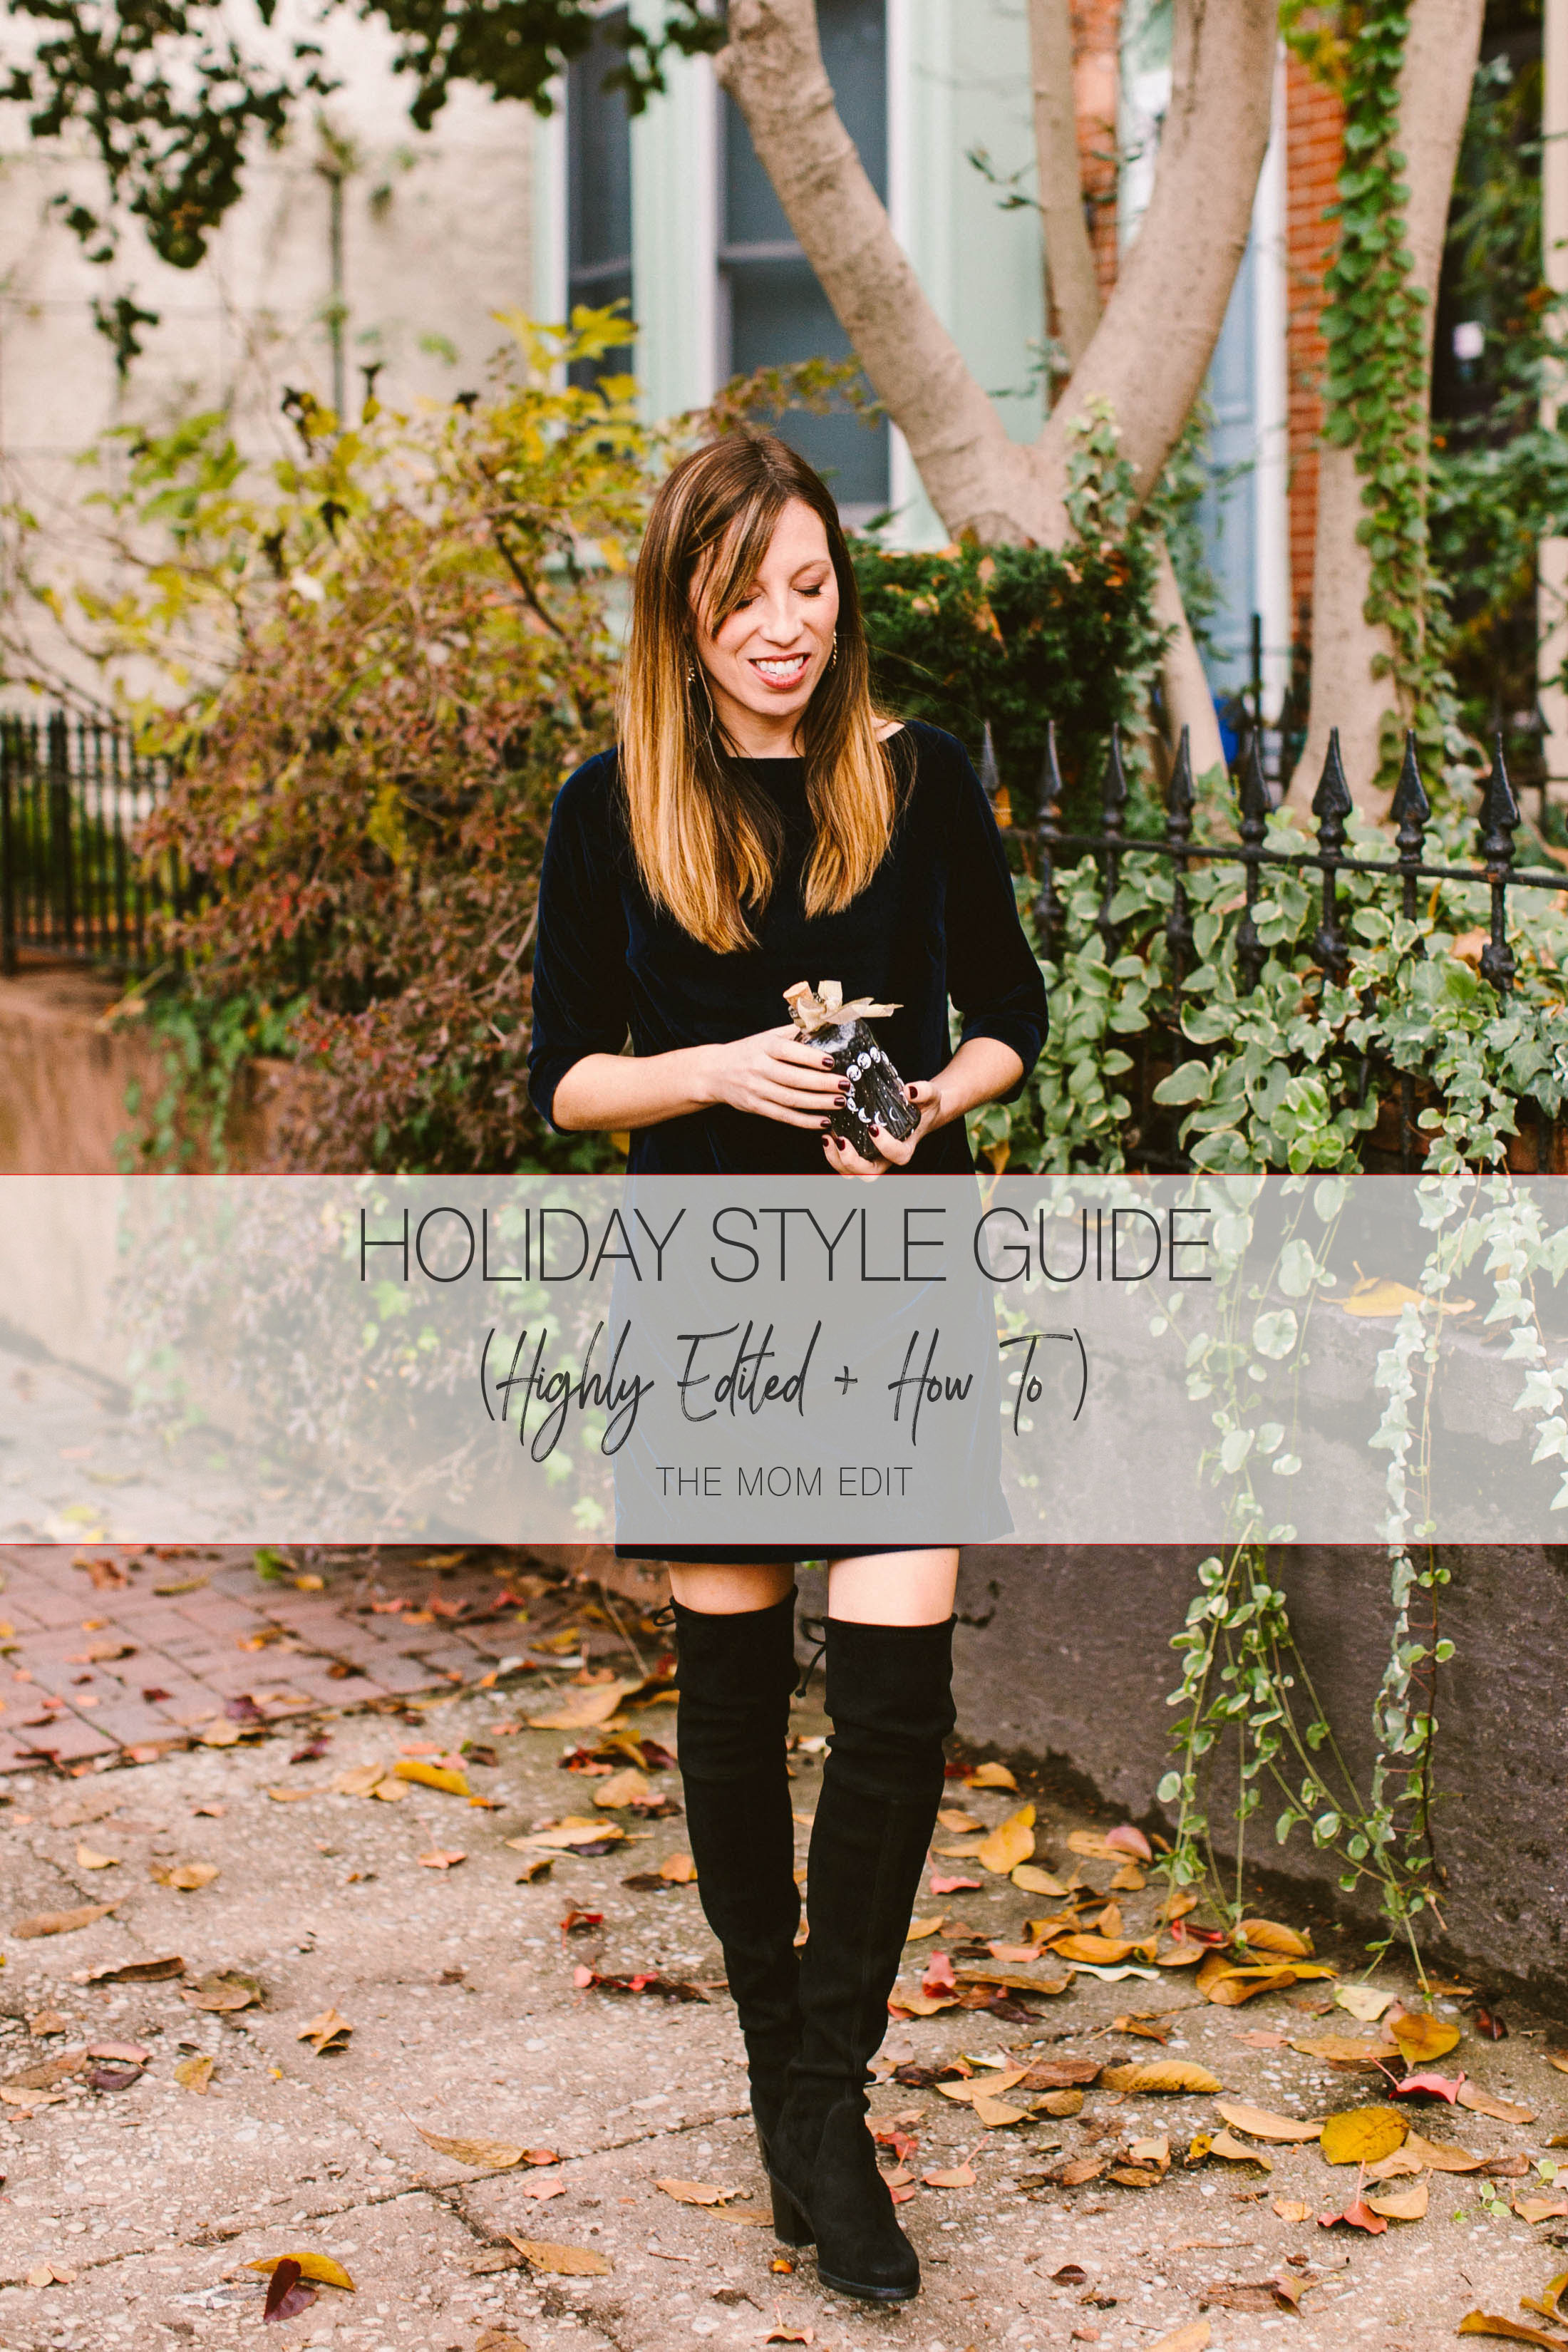 Happy holidays & a little wardrobe love for you! We focus on what's already in your closet & how to add a few key pieces to make your outfits more festive.